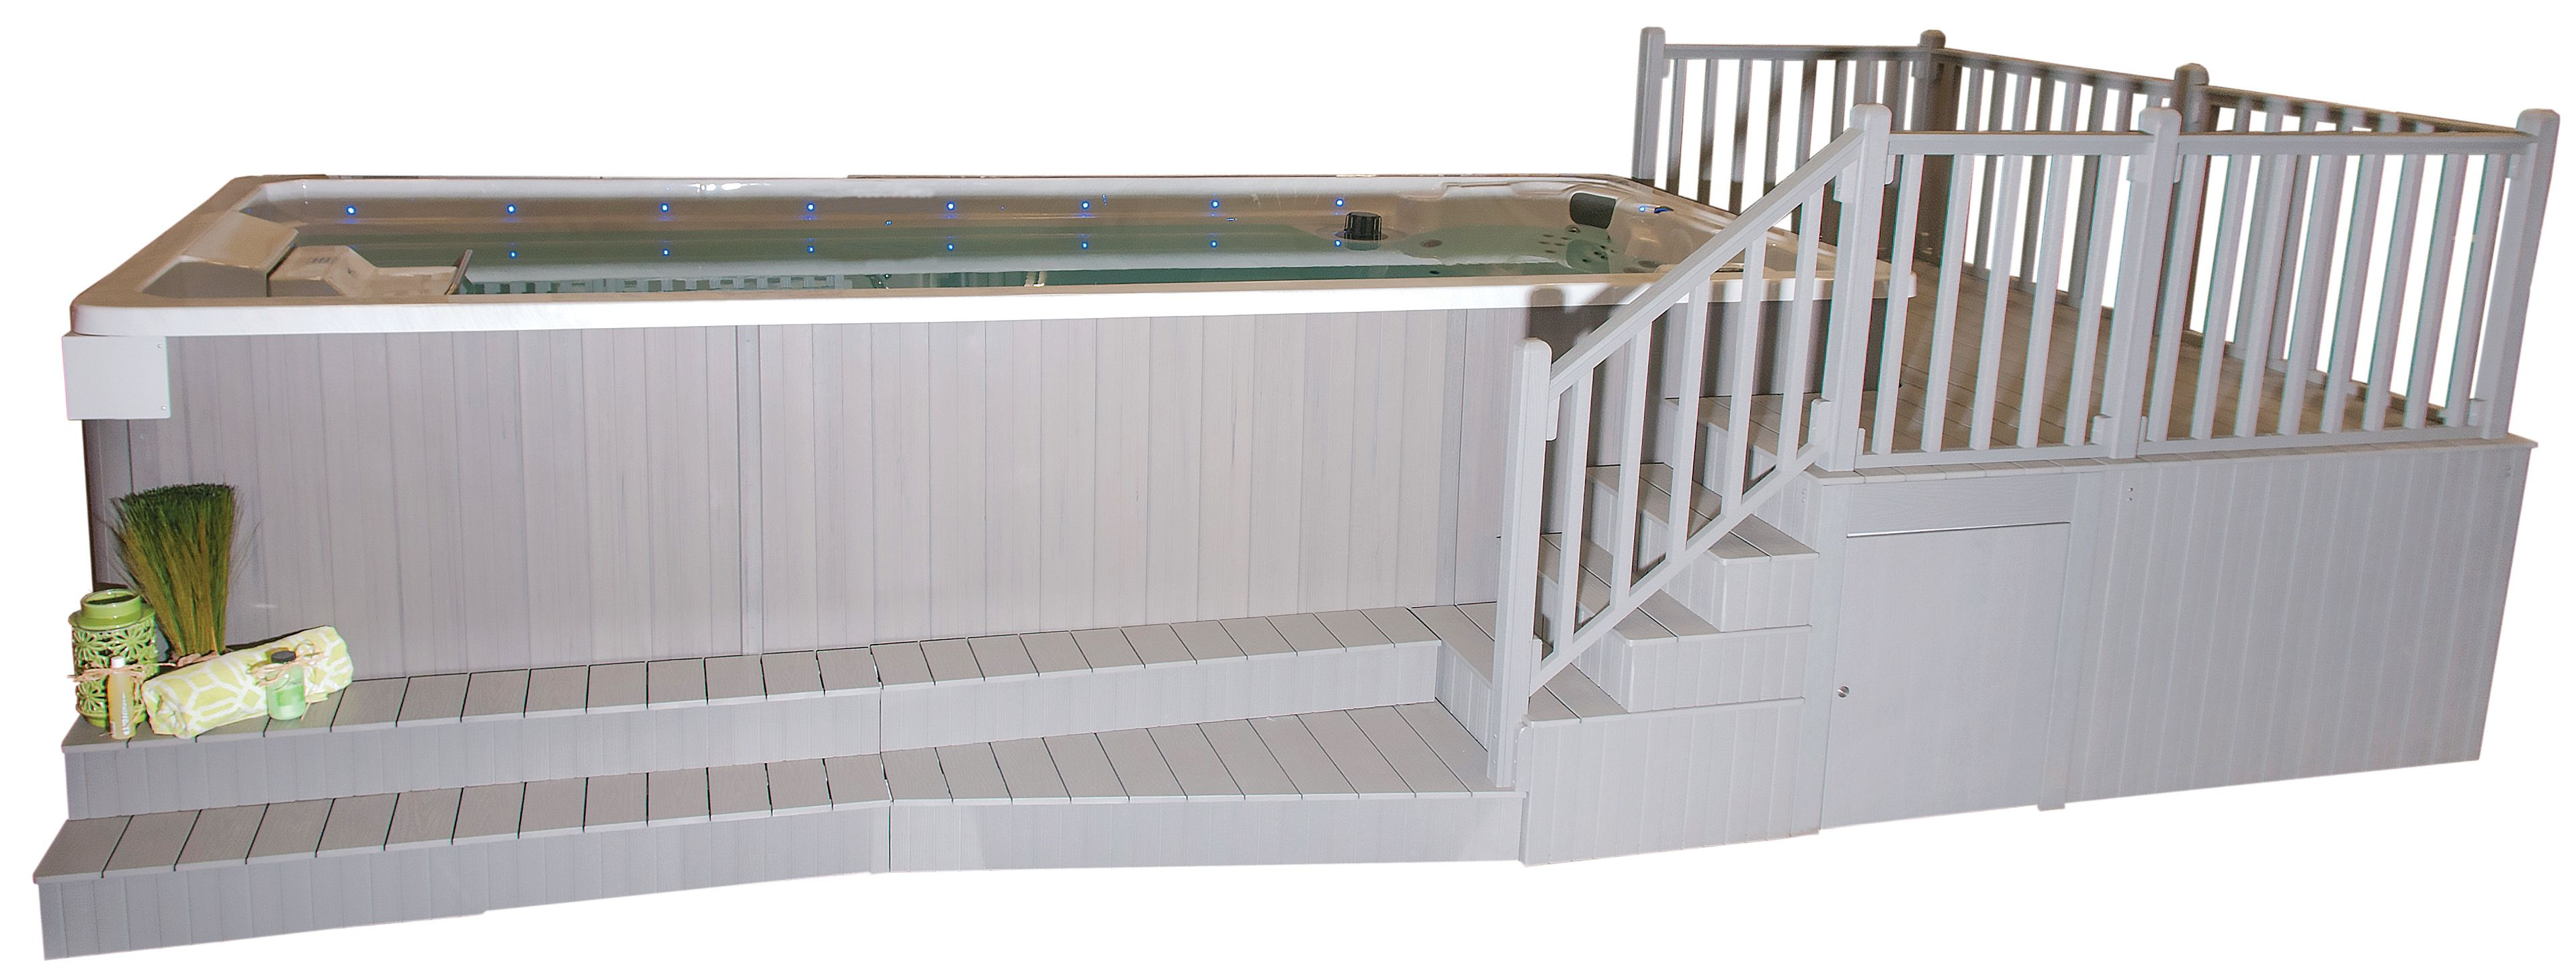 Beau Swim Spa With Steps, Stairs, And Deck